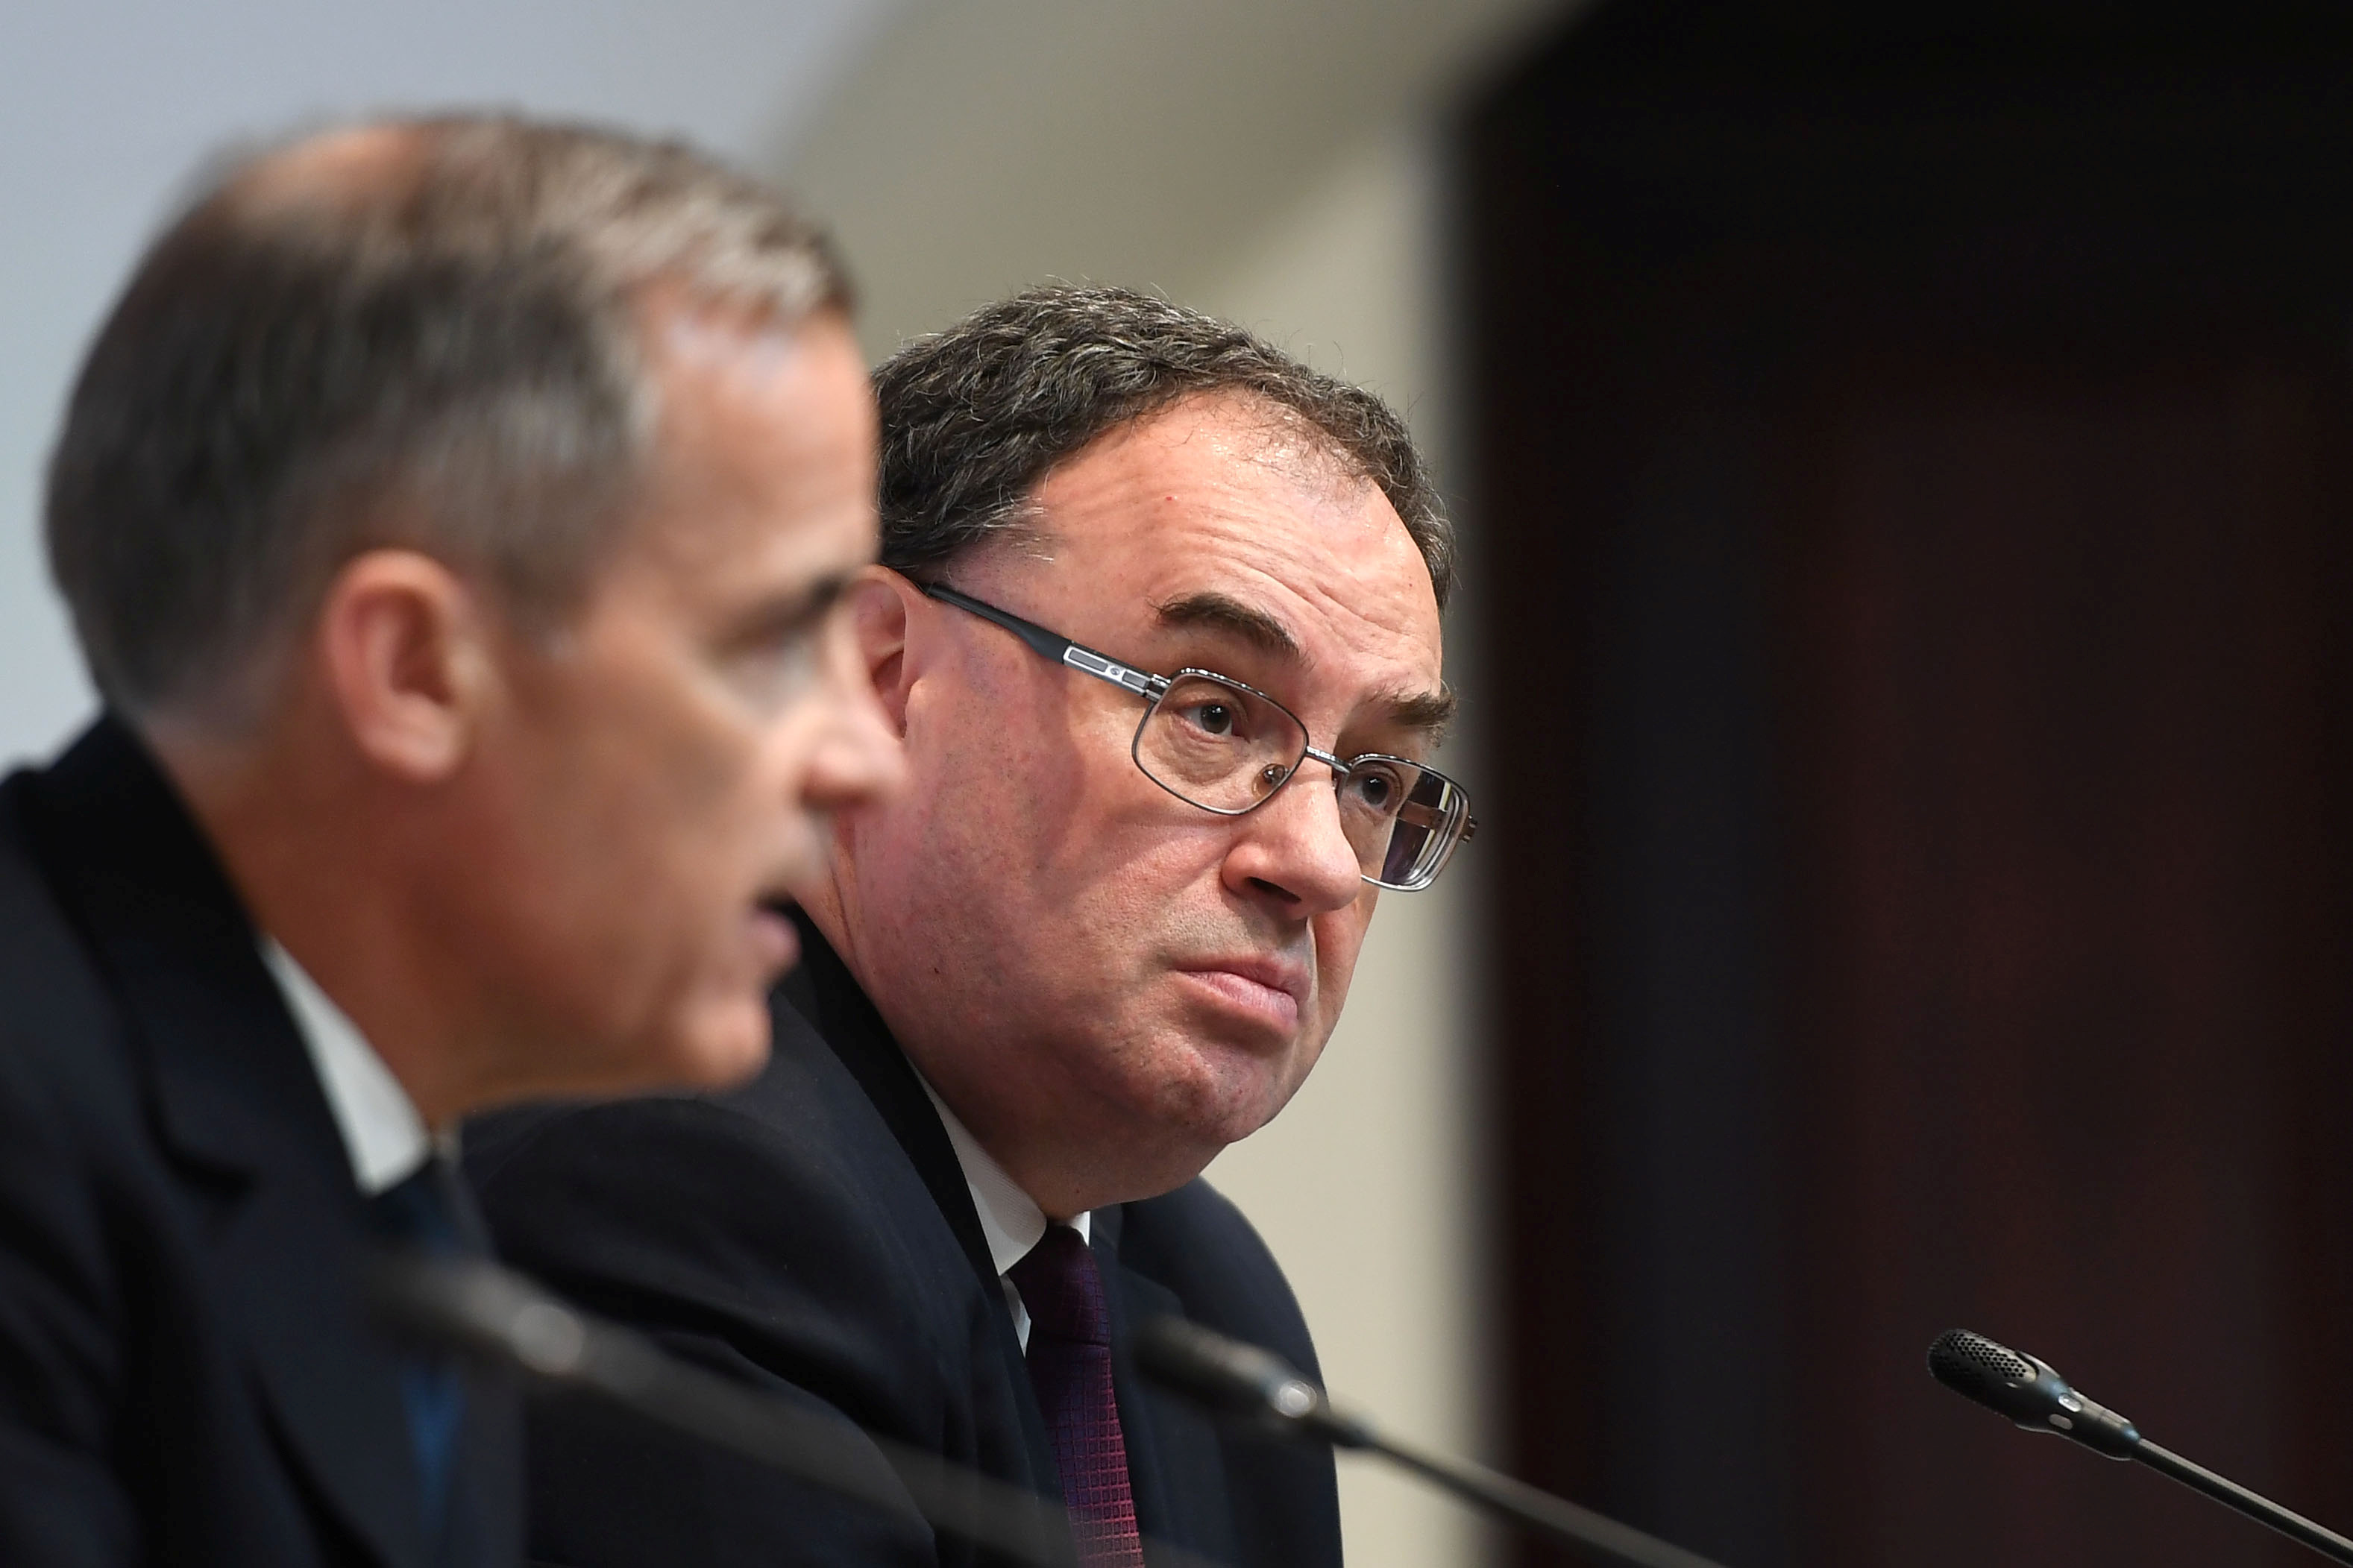 Mark Carney, Governor of Band of England and Andrew Bailey, Governor-designate of BOE, attend a news conference at Bank Of England in London, Britain March 11, 2020. Peter Summers/Pool via REUTERS